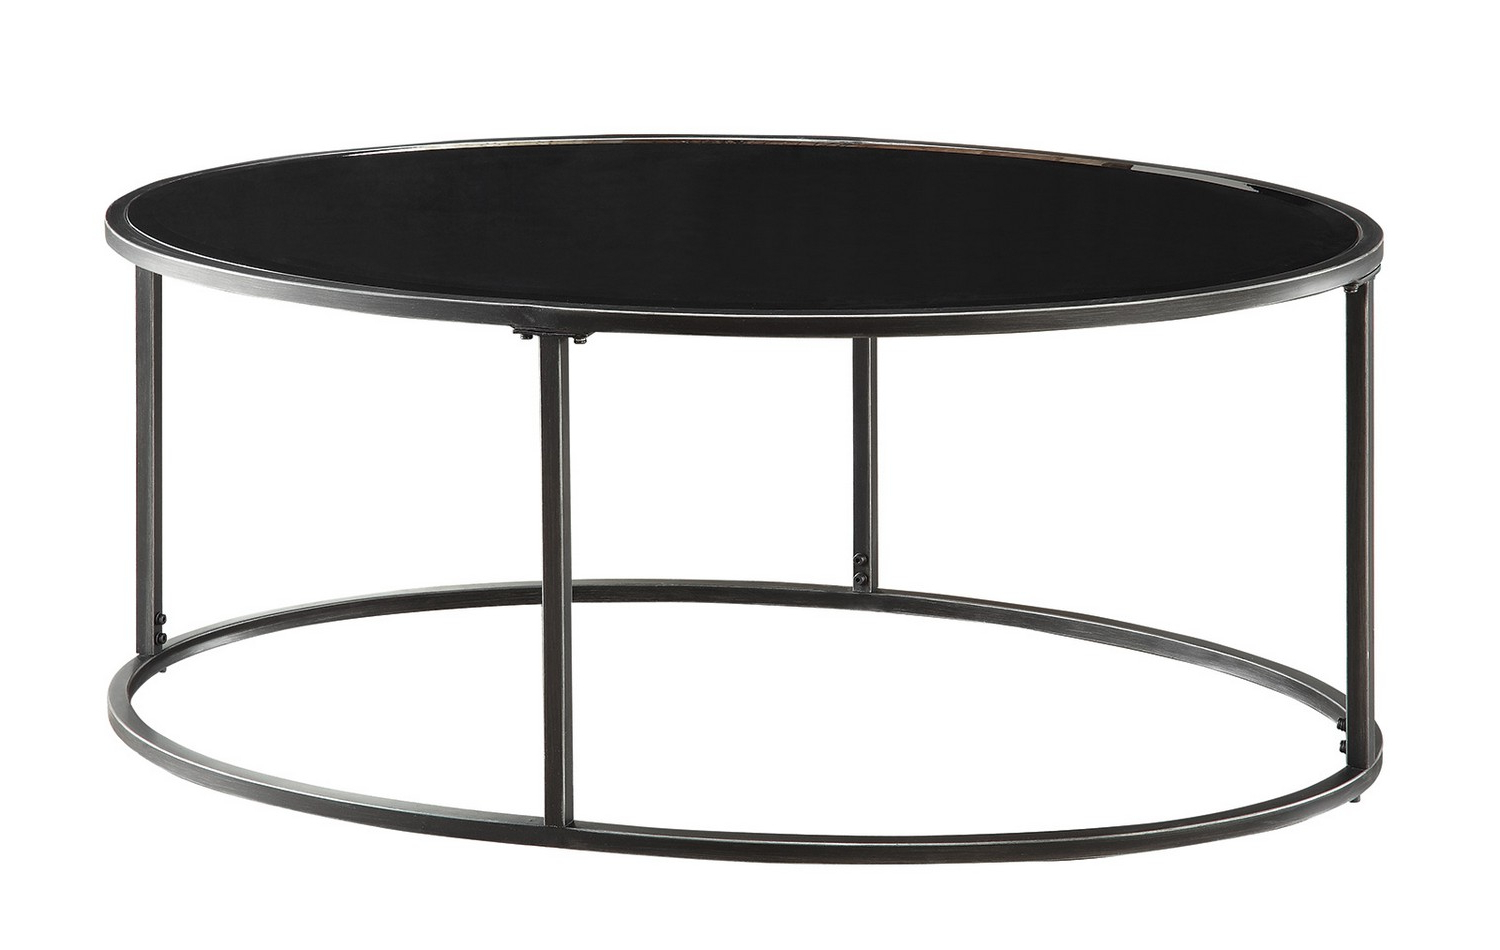 Coaster 704398 Coffee/cocktail Table – Gunmetal Frame 704398 At Pertaining To Popular Gunmetal Coffee Tables (View 8 of 20)